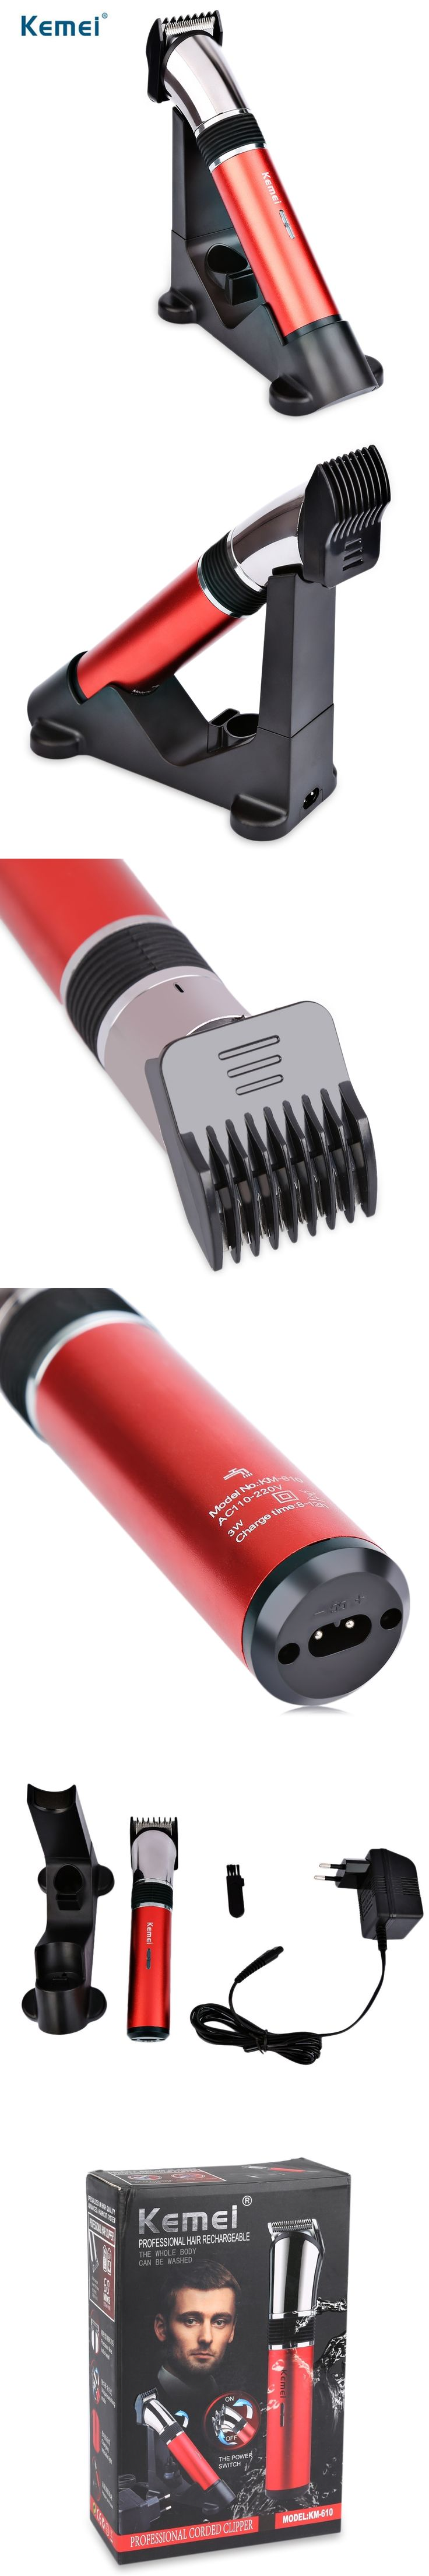 Kemei KM-610 Electric Washable Hair Clipper Professsional Rechargeable Hair Trimmer Beard Shaver Razor For Man EU Plug